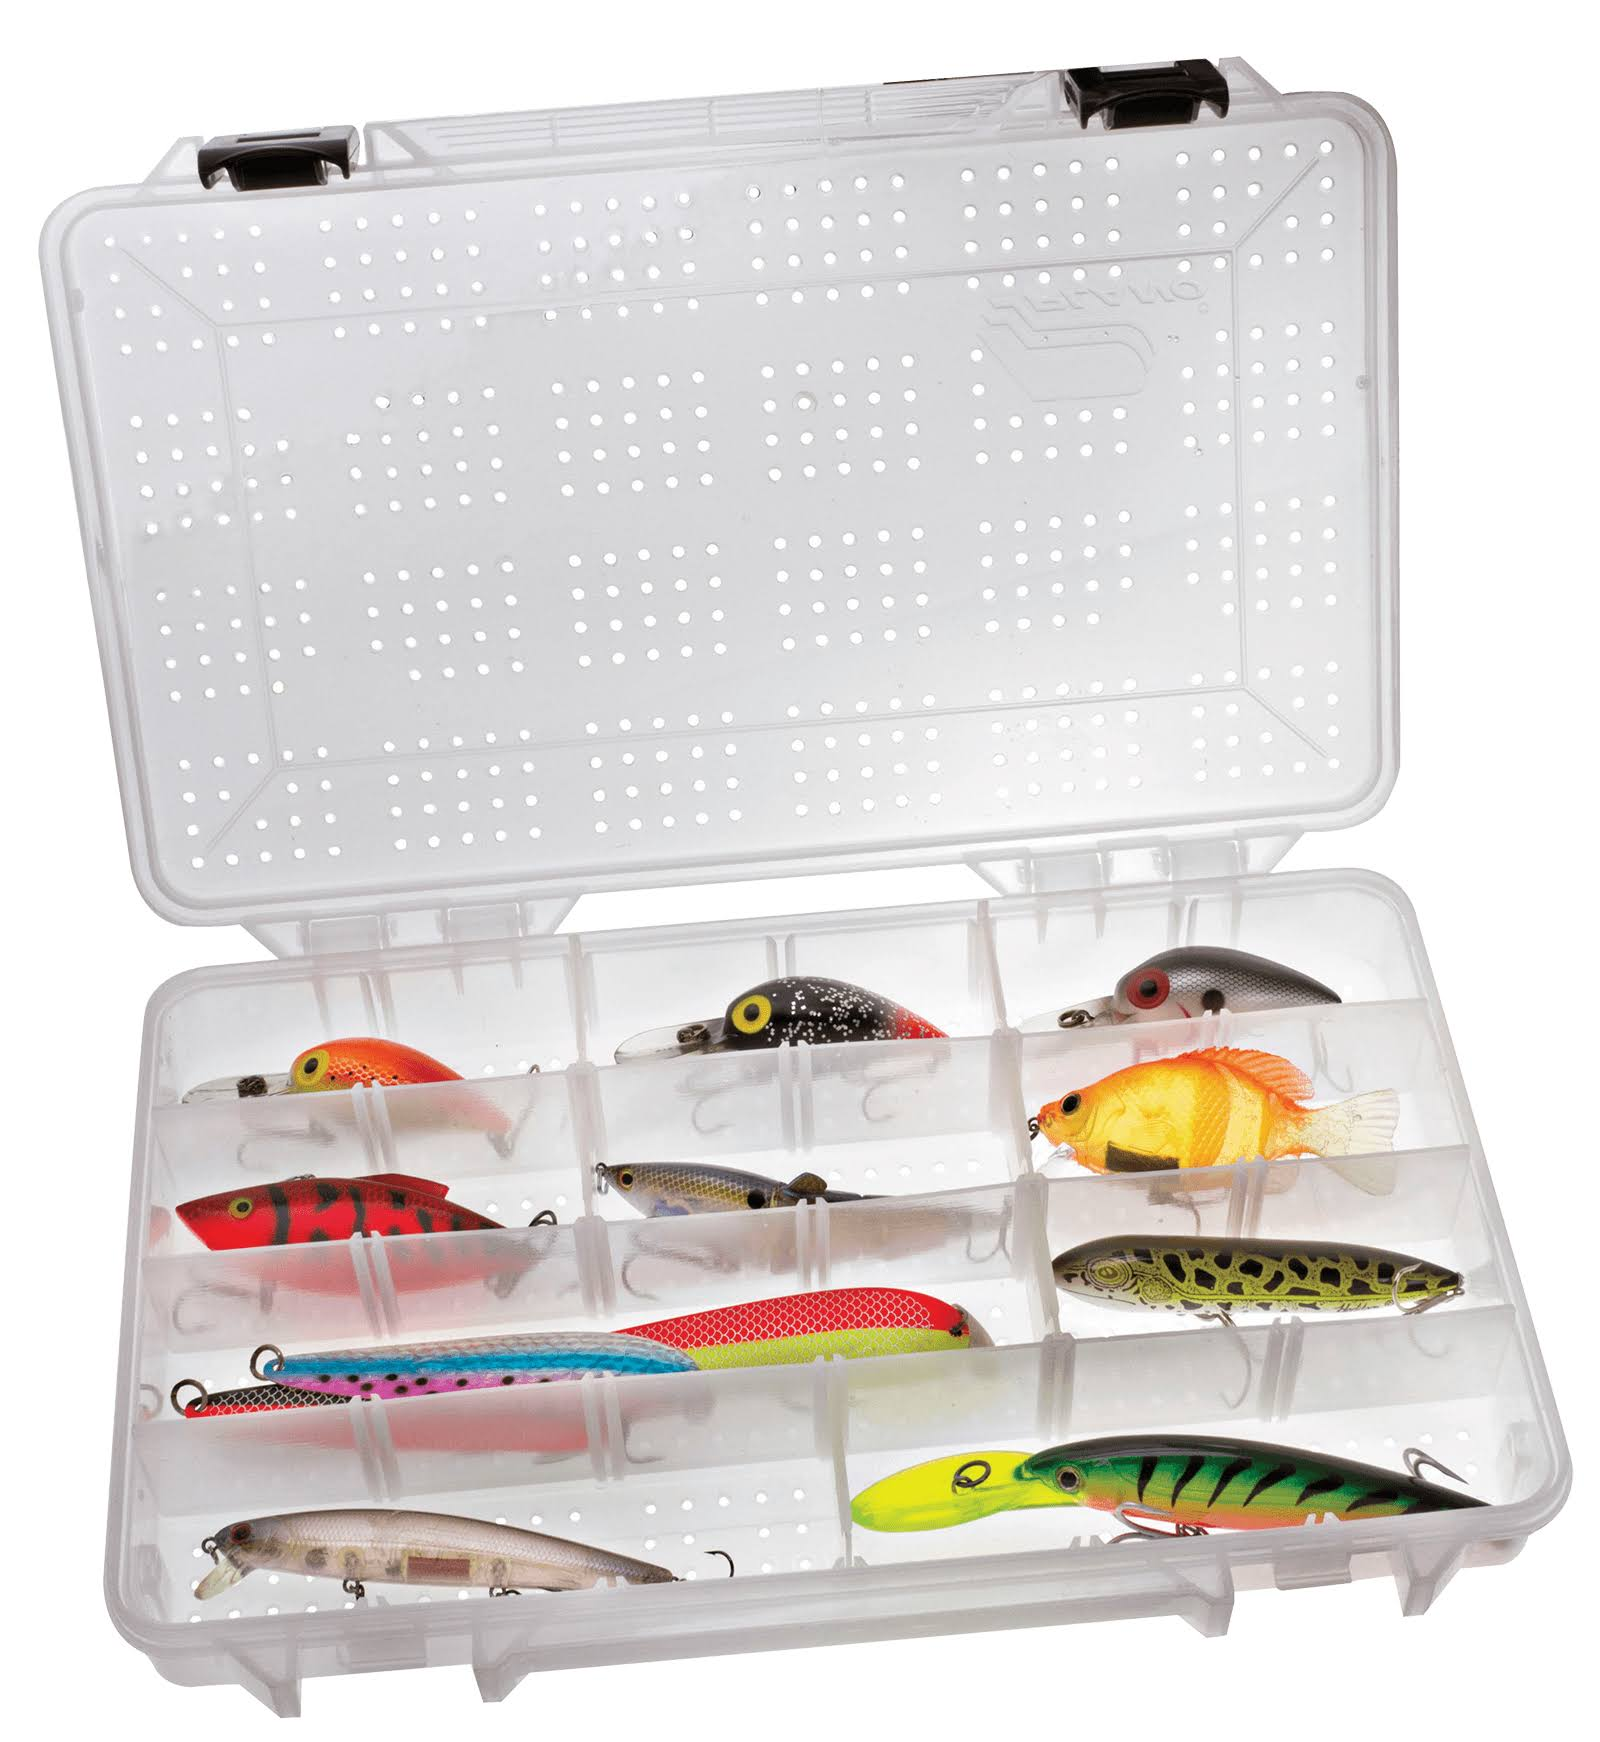 Plano 43700-0 Hydro-flo Stowaway Tackle Box